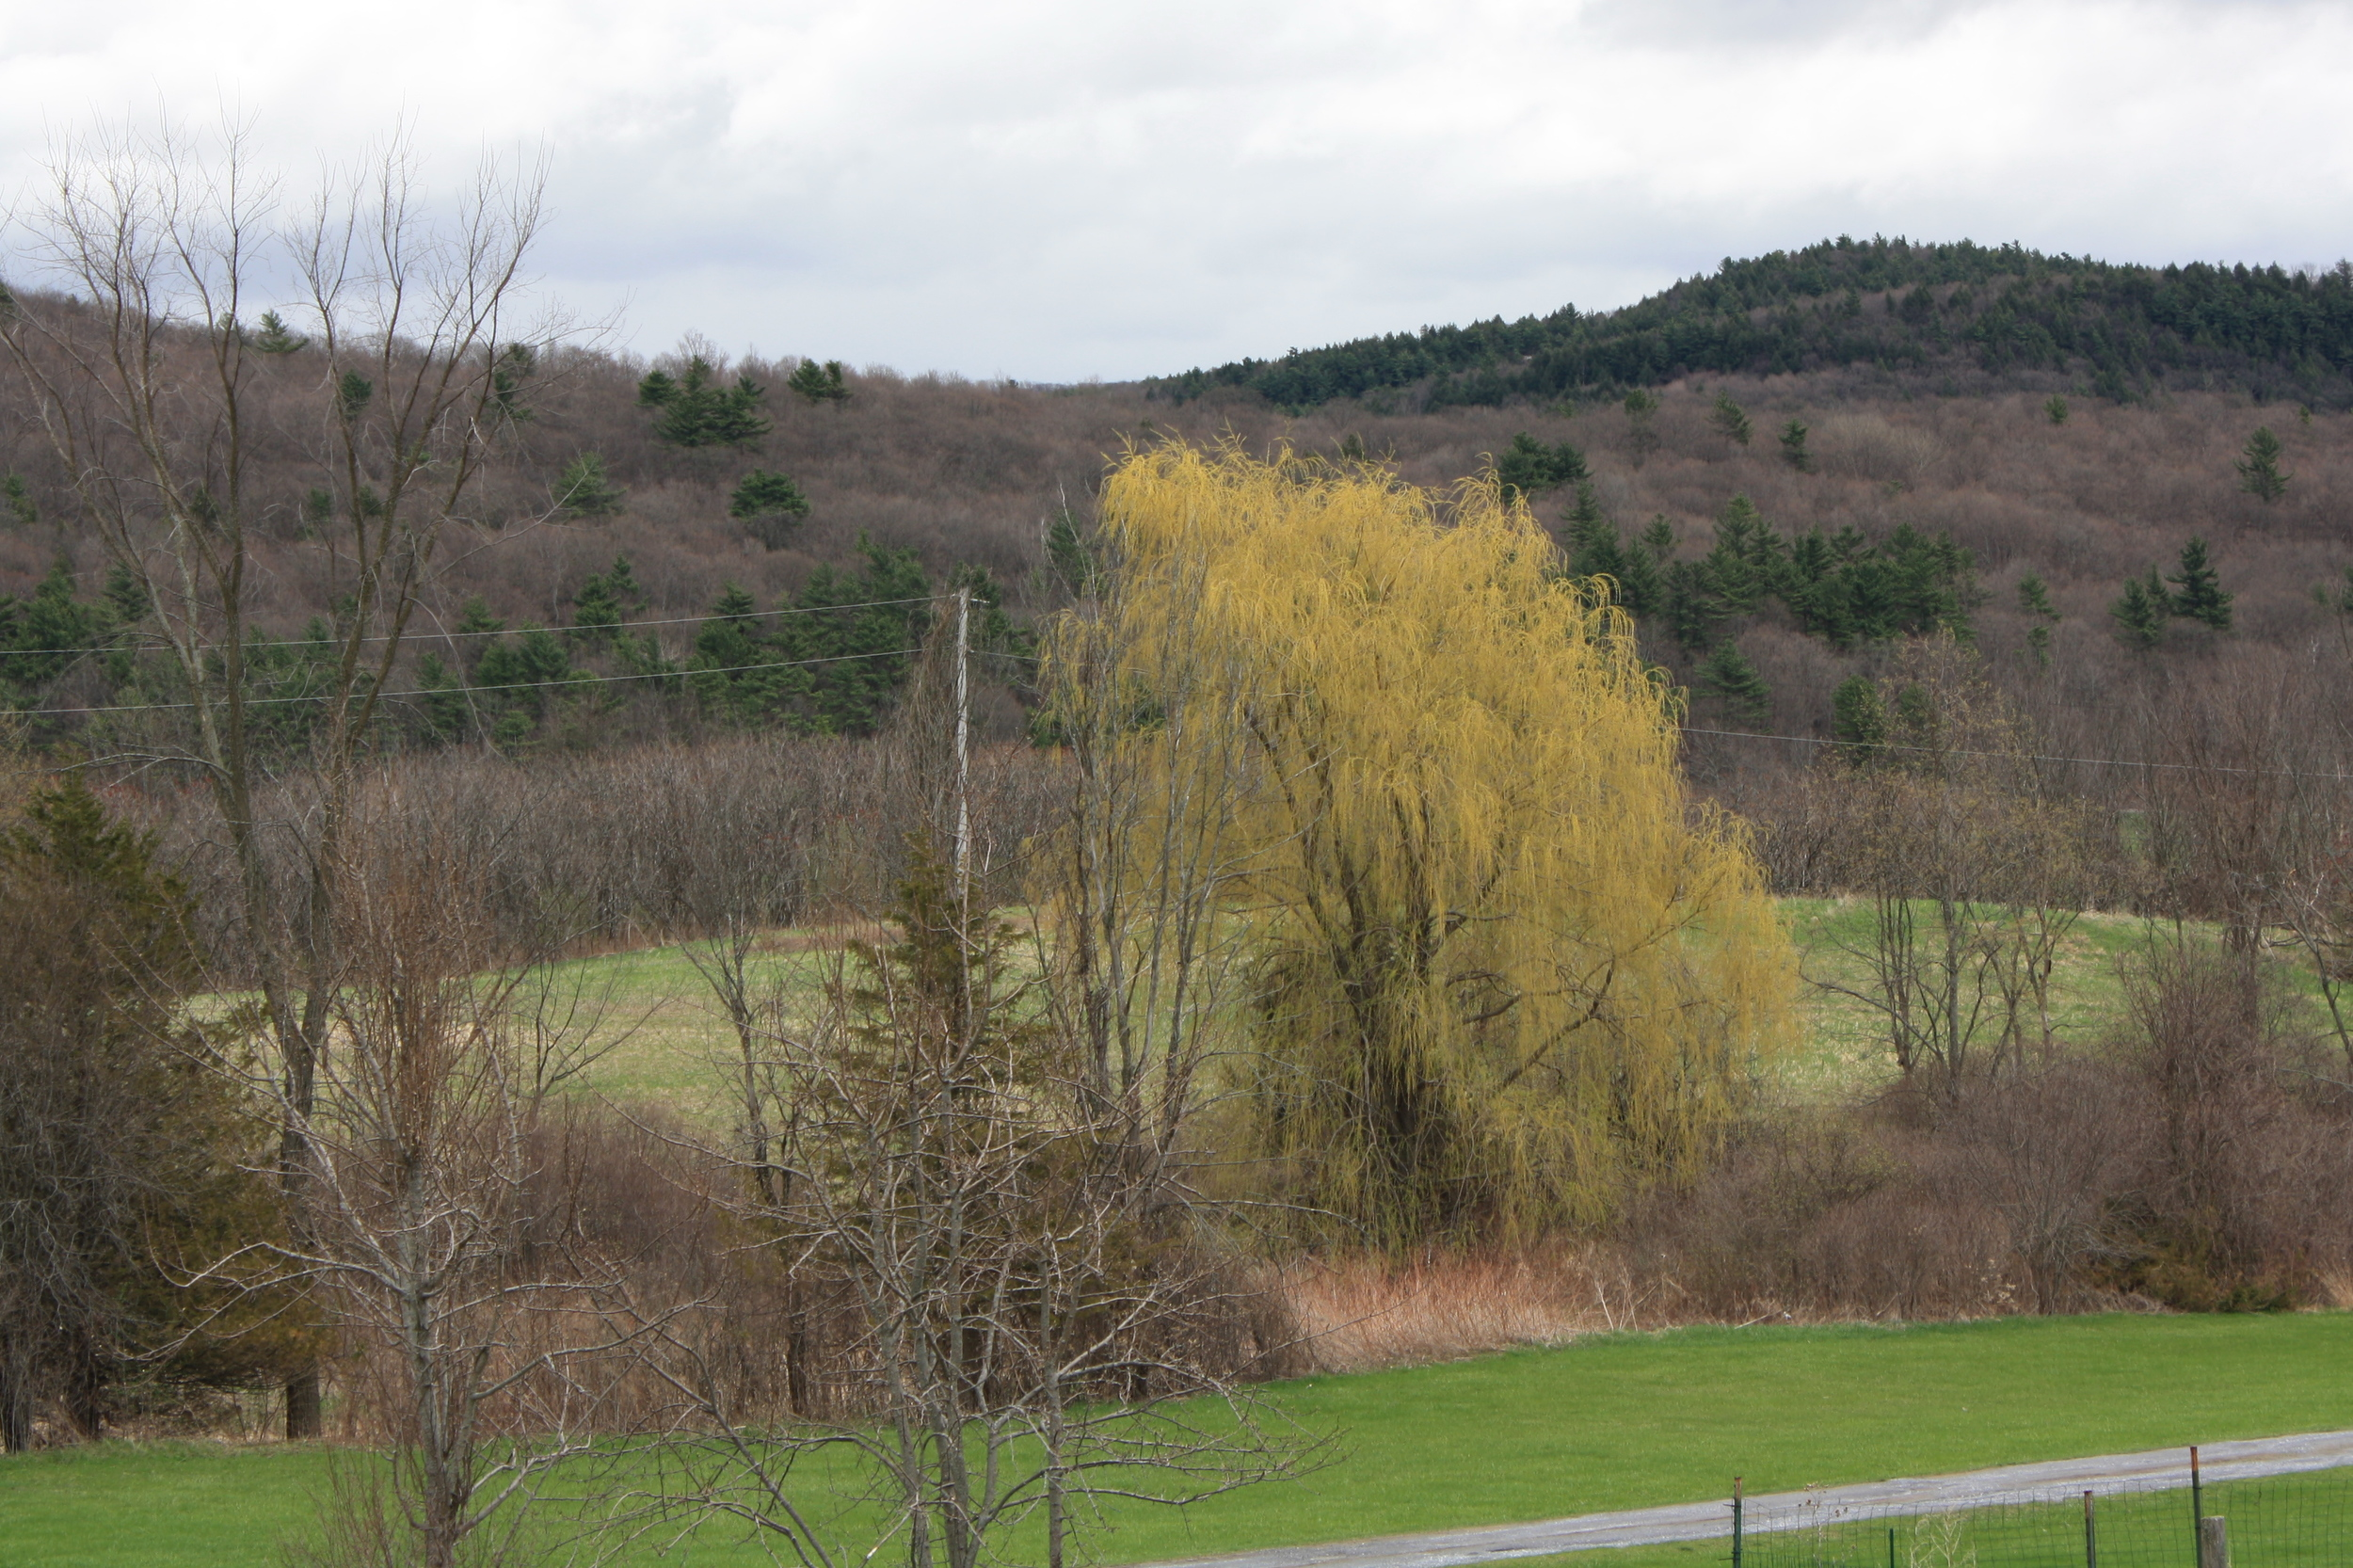 View from the window as I write this, May 4